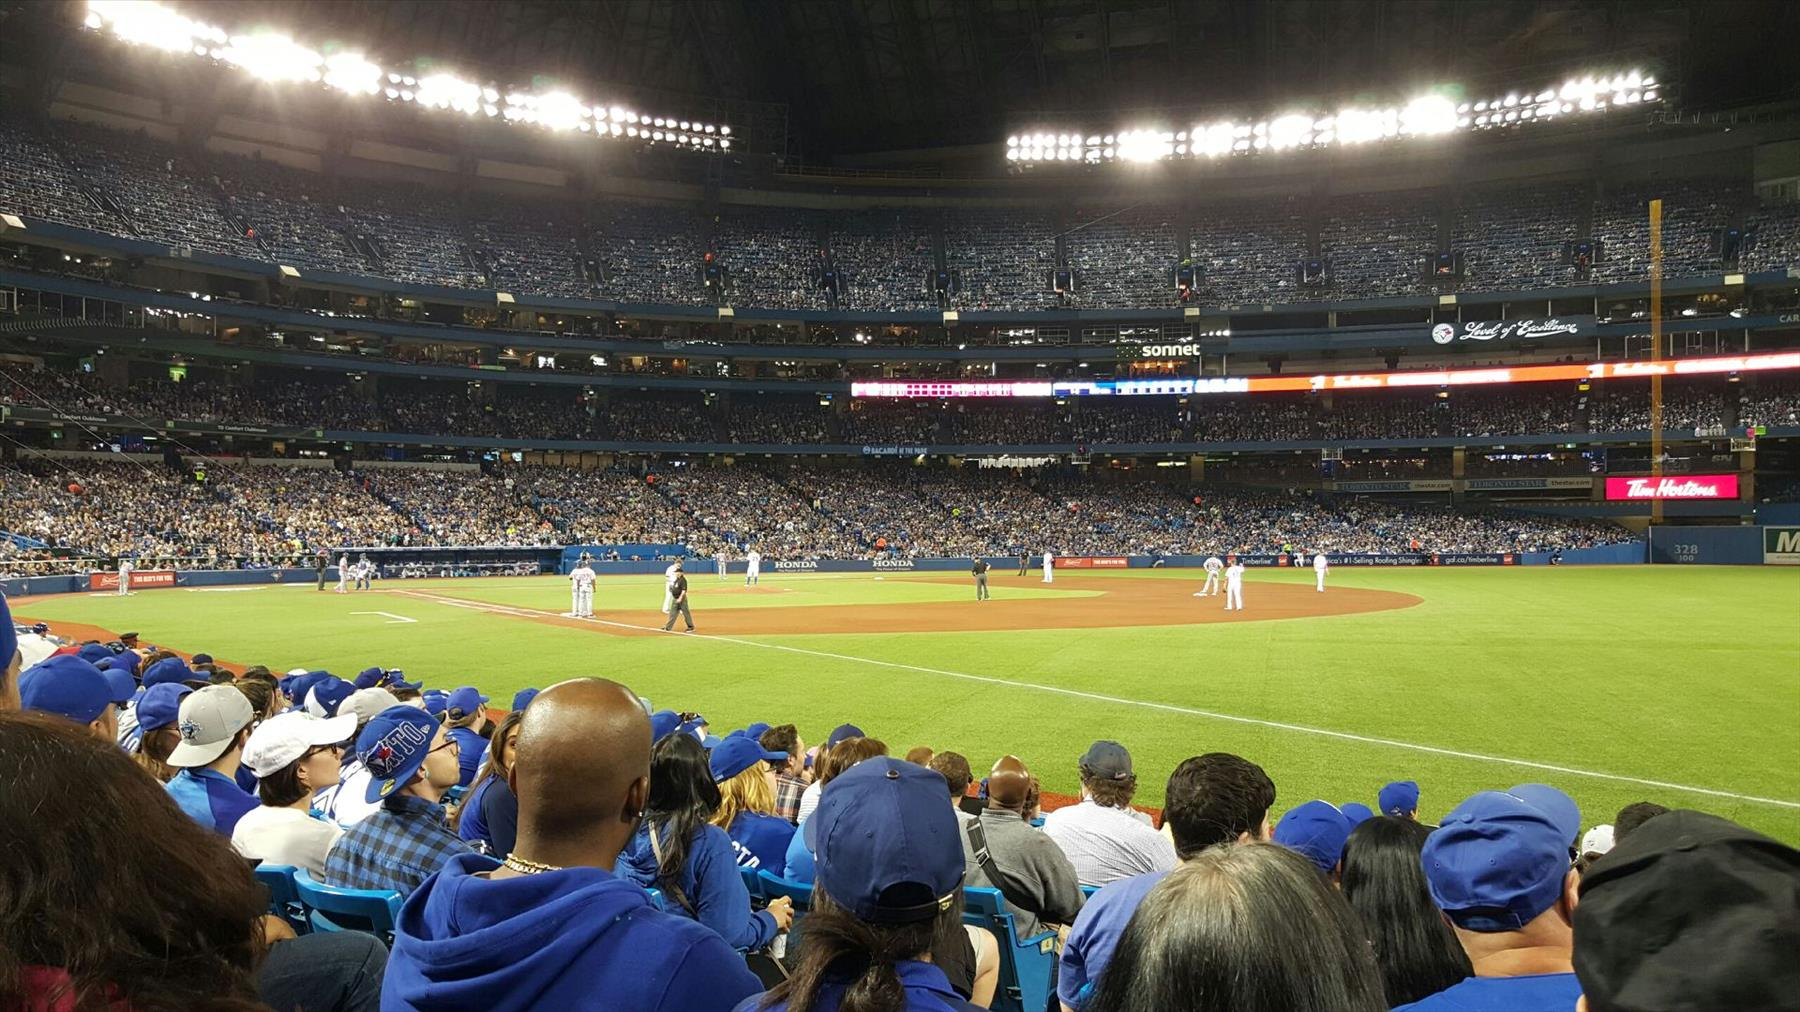 Toronto Blue Jays VS LA Dodgers at the Rogers Centre – Ticket Review